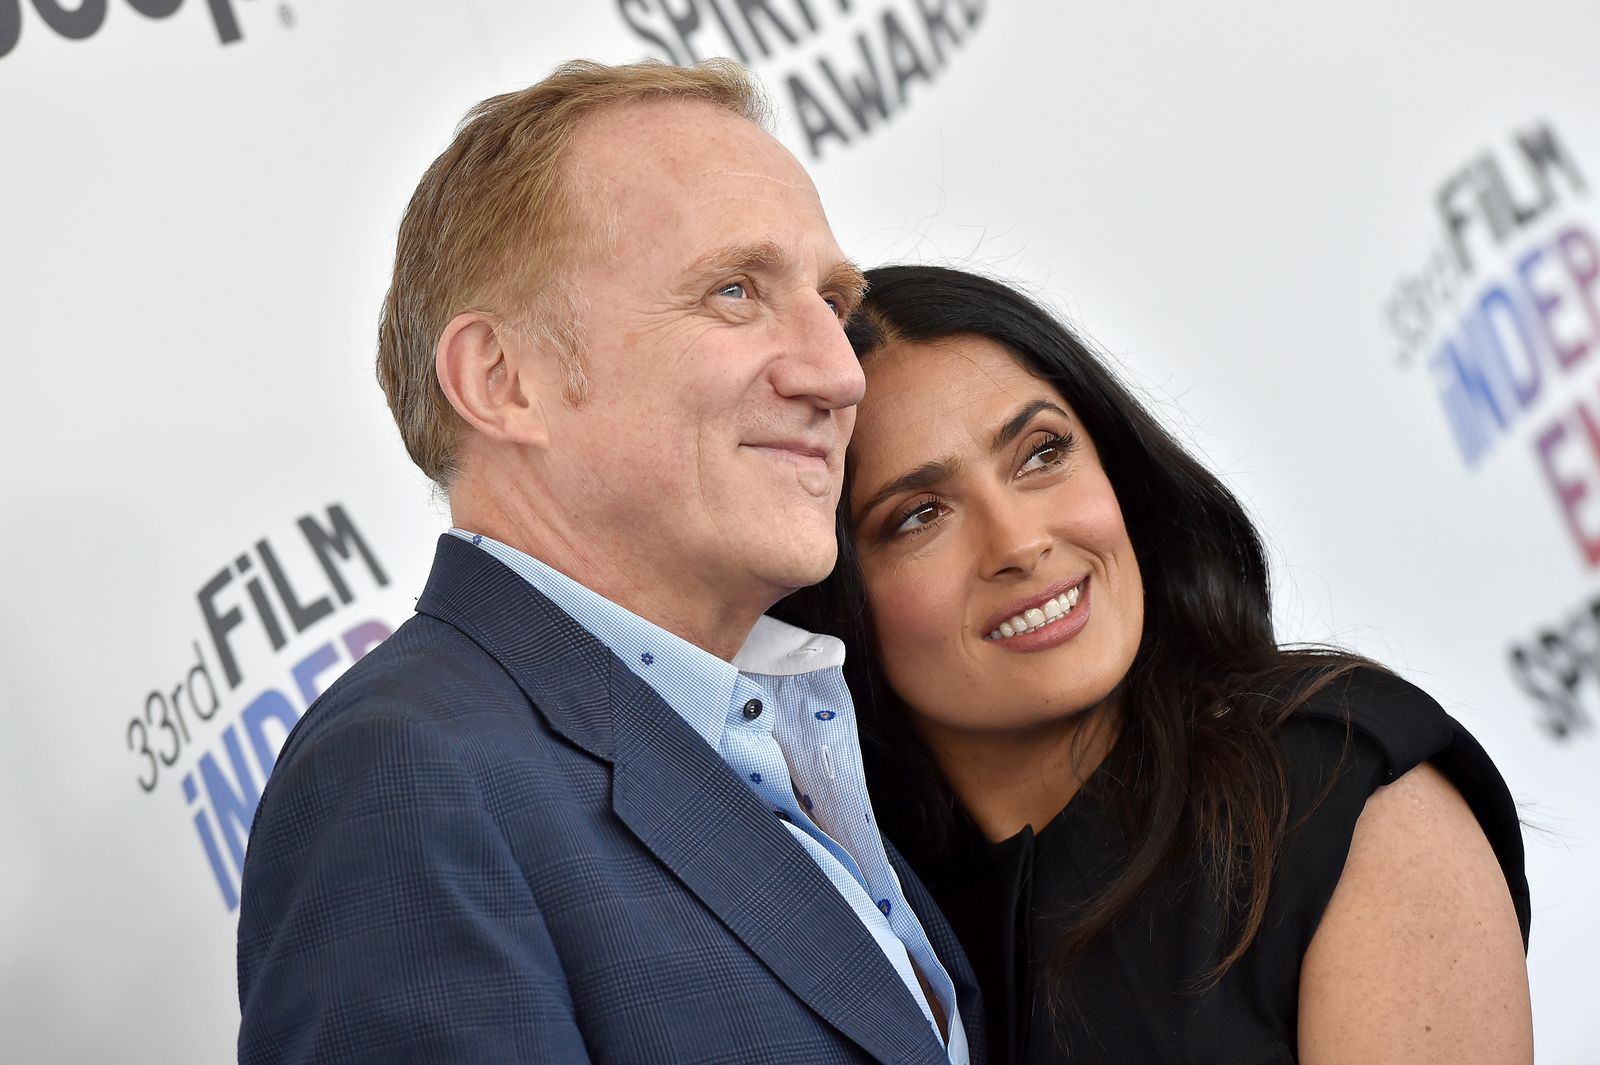 Francois-Henri Pinault andSalma Hayek at the Film Independent Spirit Awards on March 3, 2018, in Santa Monica, California | Photo:Axelle/Bauer-Griffin/FilmMagic/Getty Images